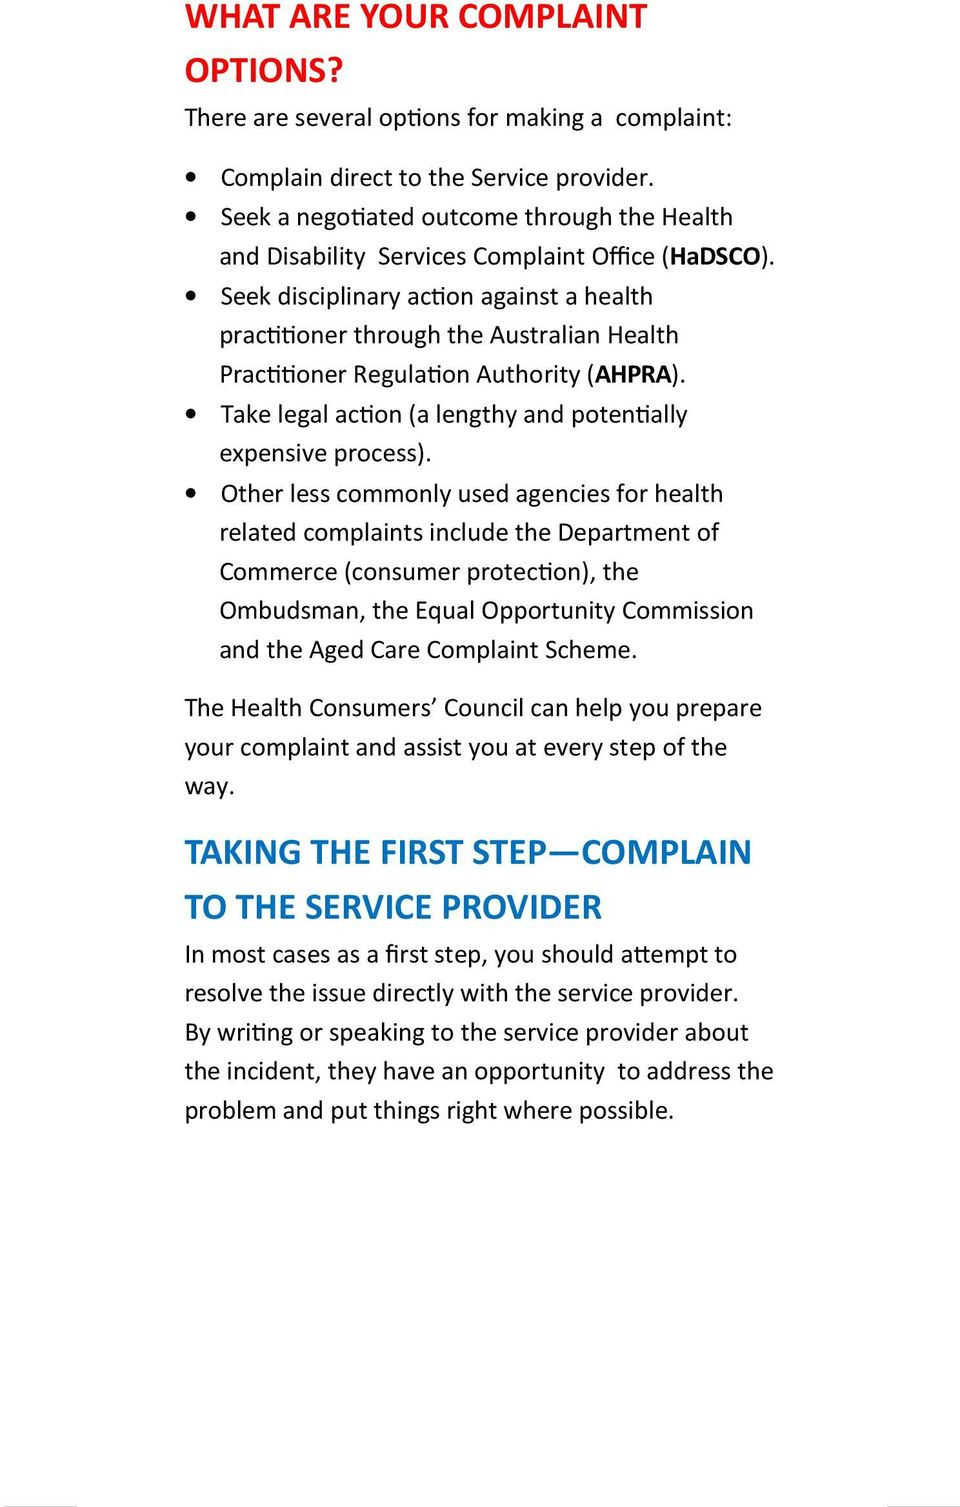 "Seek disciplinary ac""on against a health prac""""oner through the Australian Health Prac""""oner Regula""on Authority (AHPRA). Take legal ac""on (a lengthy and poten""ally expensive process)."